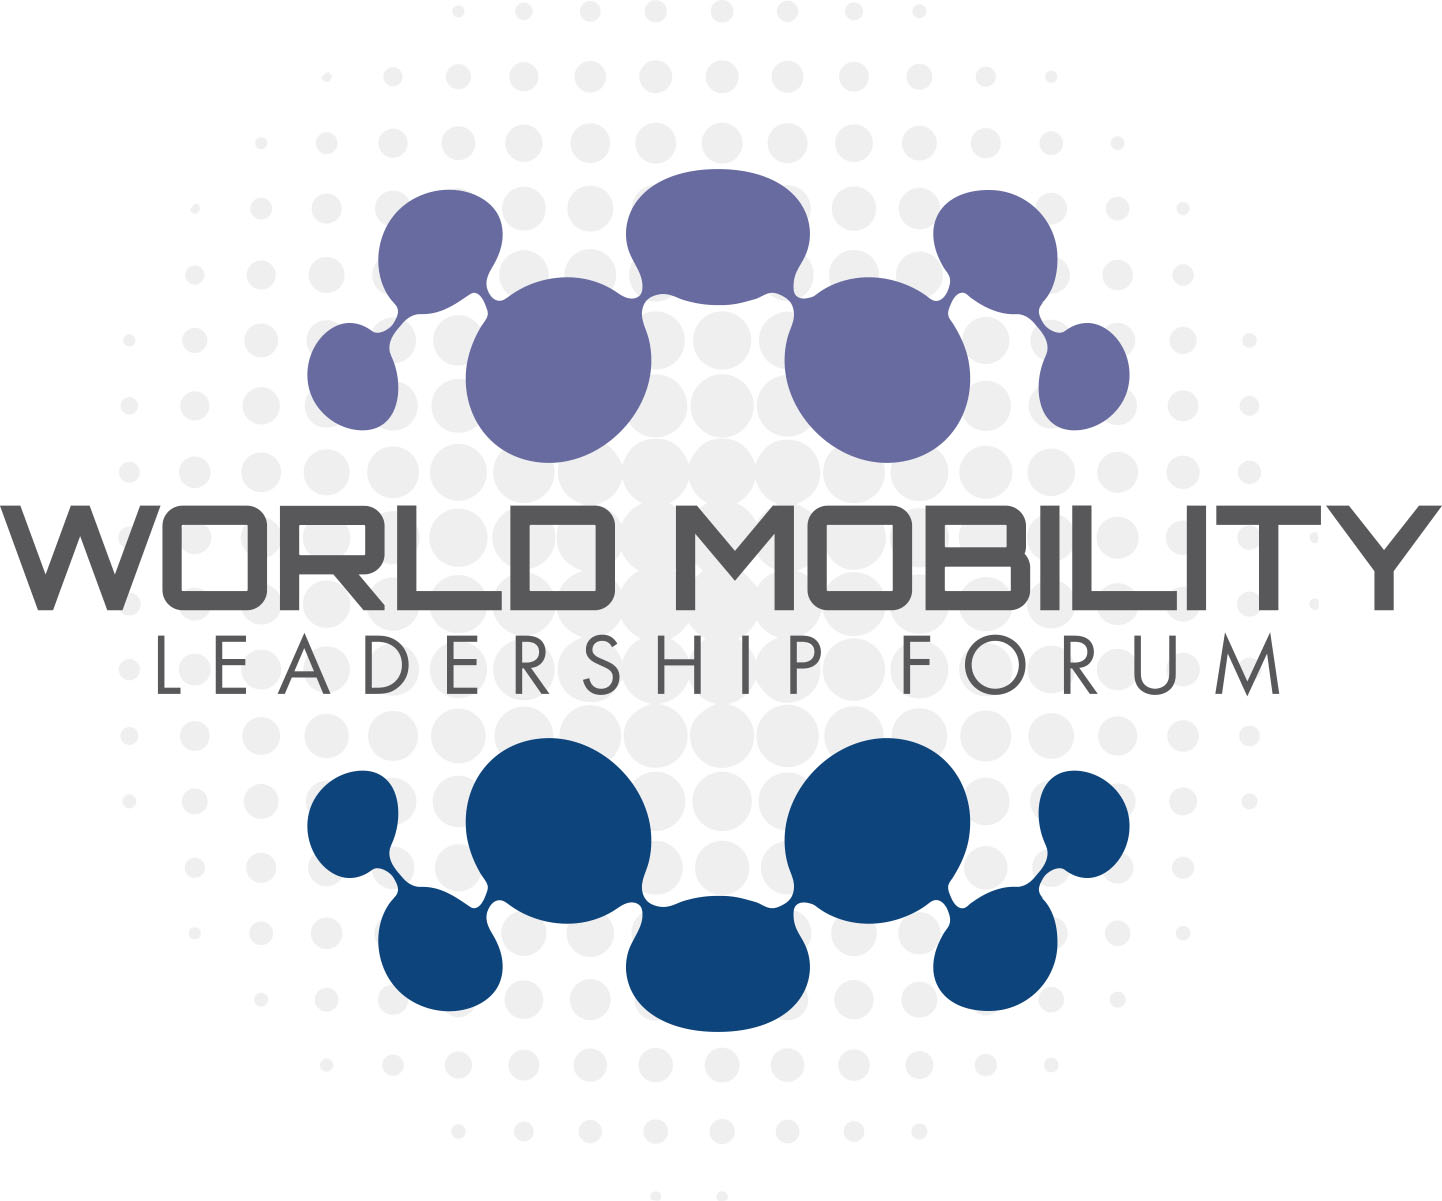 World Mobility Leadership Forum